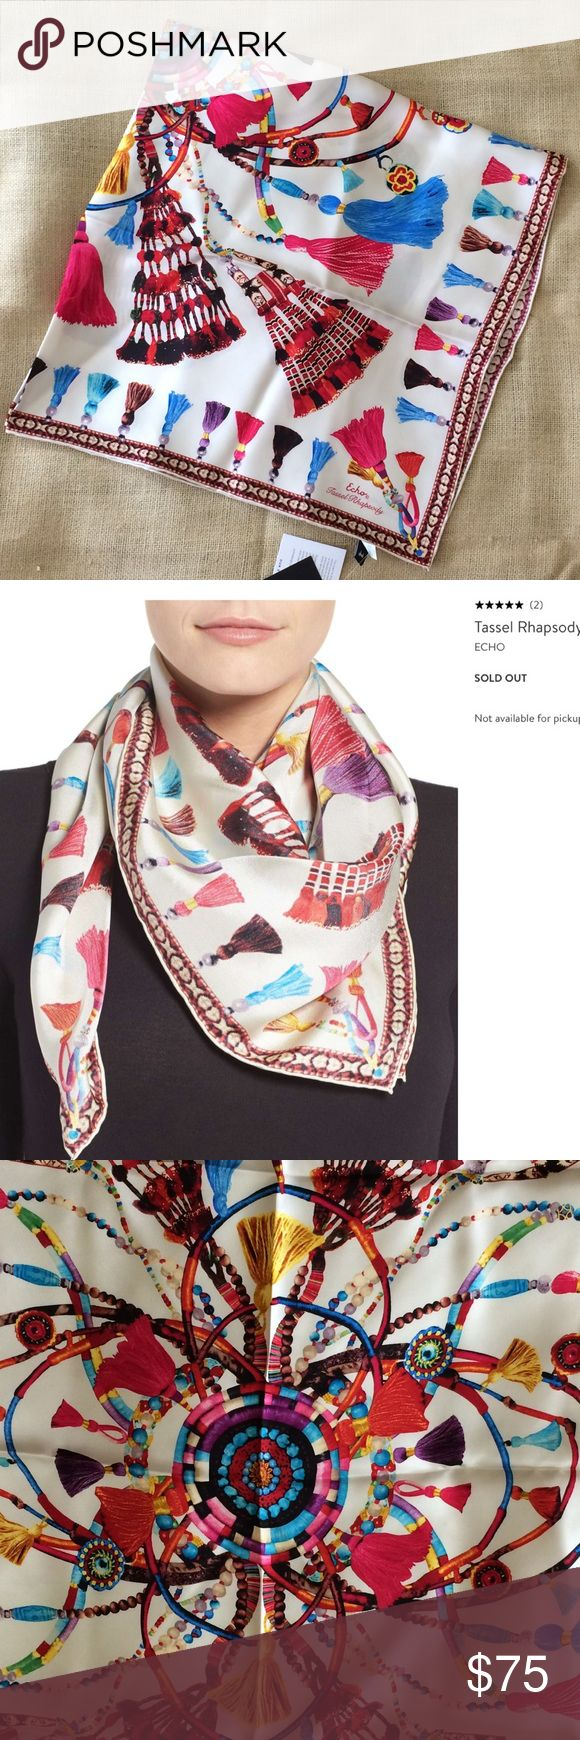 🆕LISTING Echo Tassel Rhapsody Scarf NWT. With a pattern inspired by the Himalayas, this 100%silk scarf made by artisans with a hand-rolled hem detailing will add vibrant color and artful finish to any ensemble! Echo Accessories Scarves & Wraps